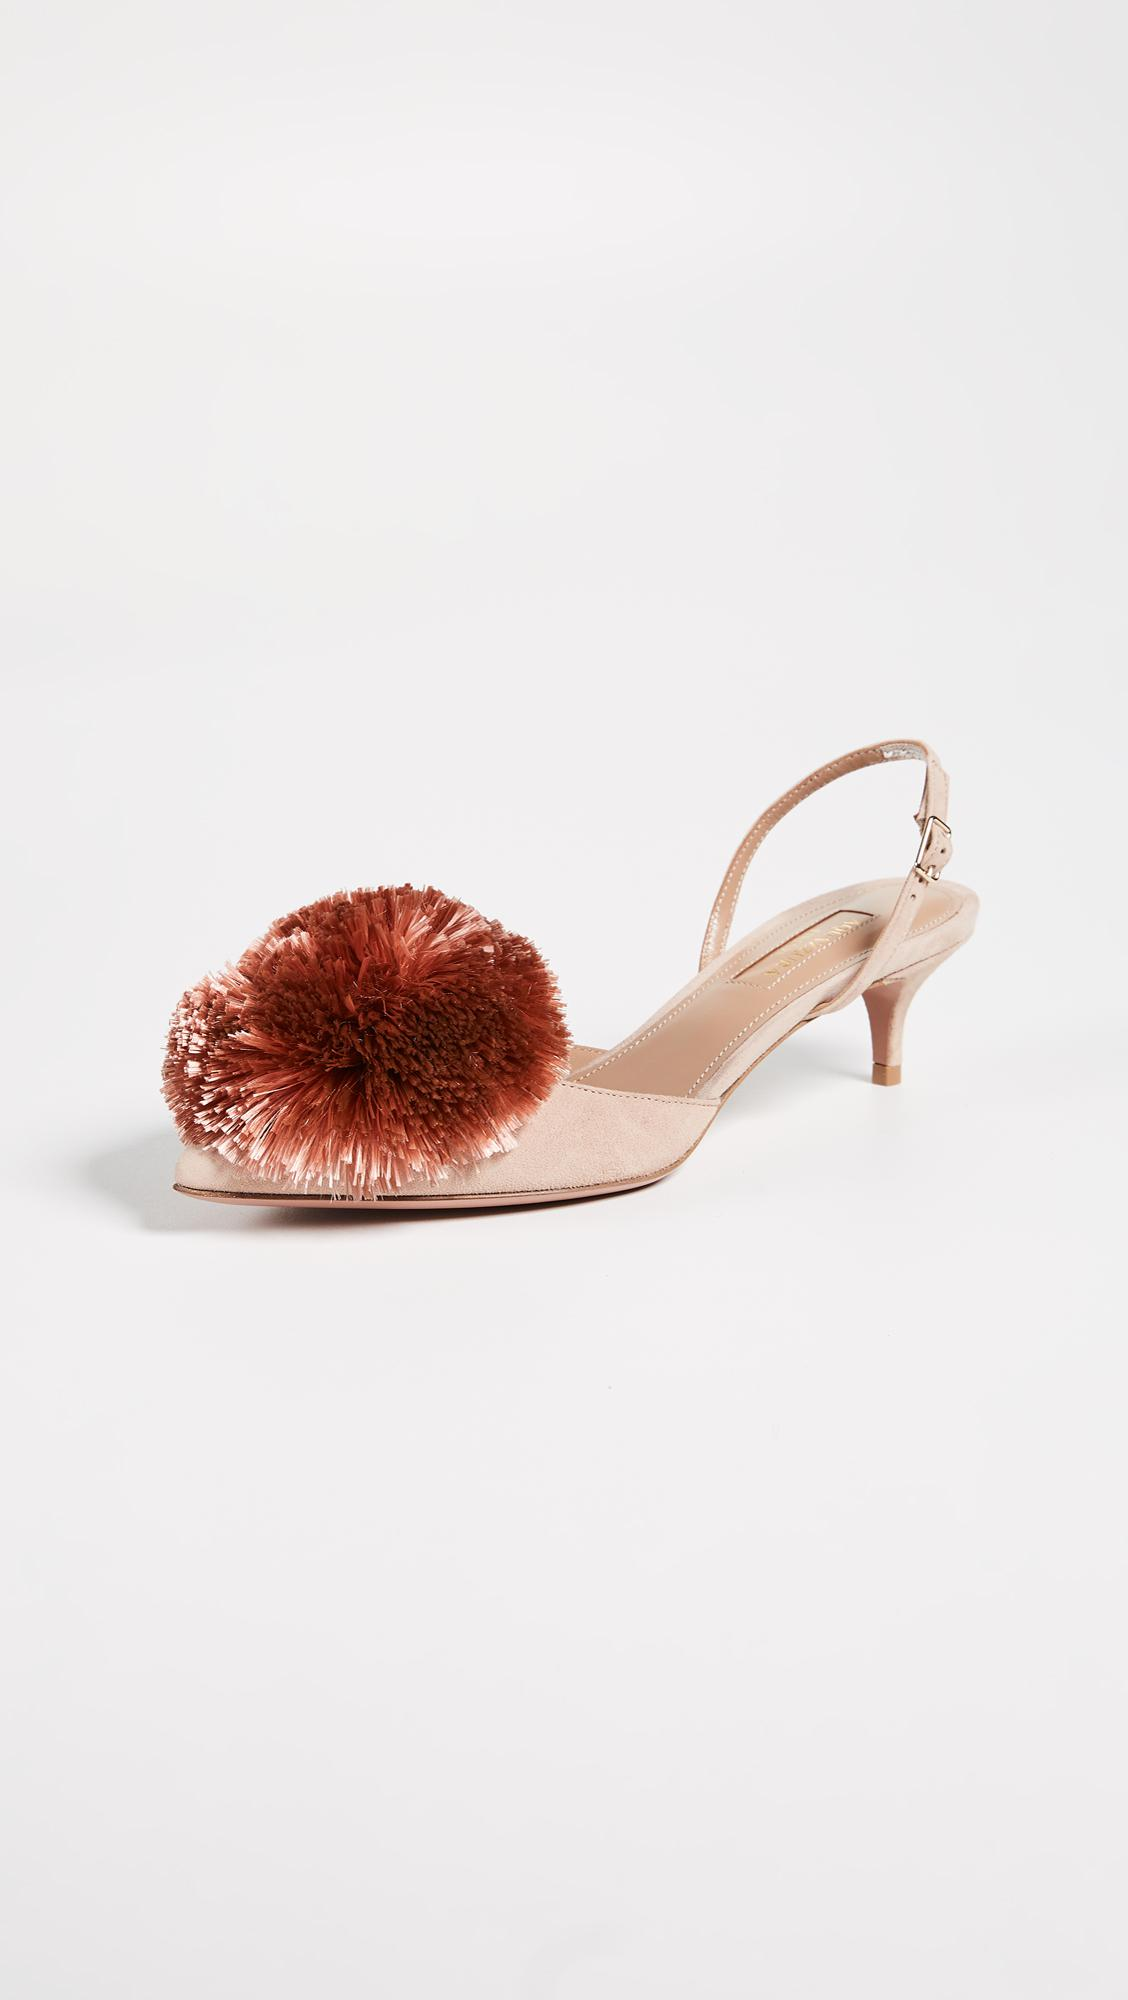 Puff Brandina.Aquazzura Powder Puff 45 Sling Pumps In Pink Lyst